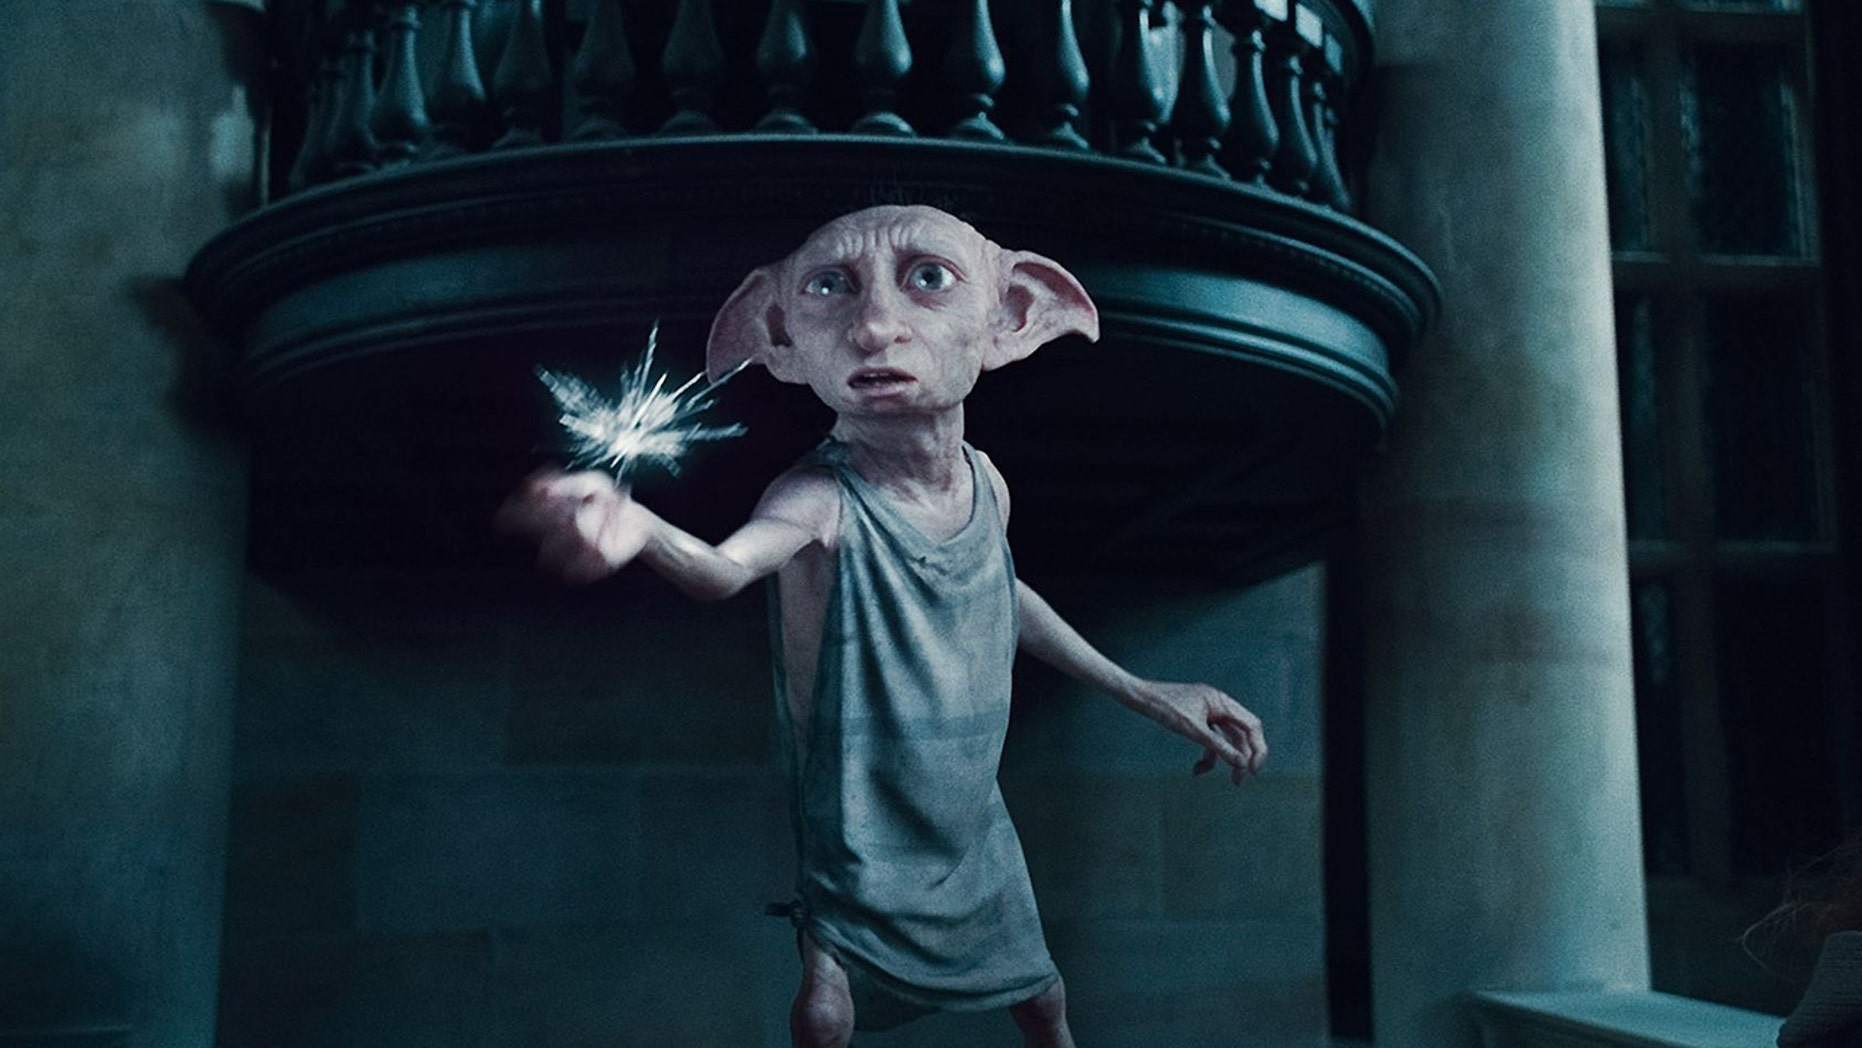 Elf-like creature caught on camera. 'Is that Dobby?' asks Internet